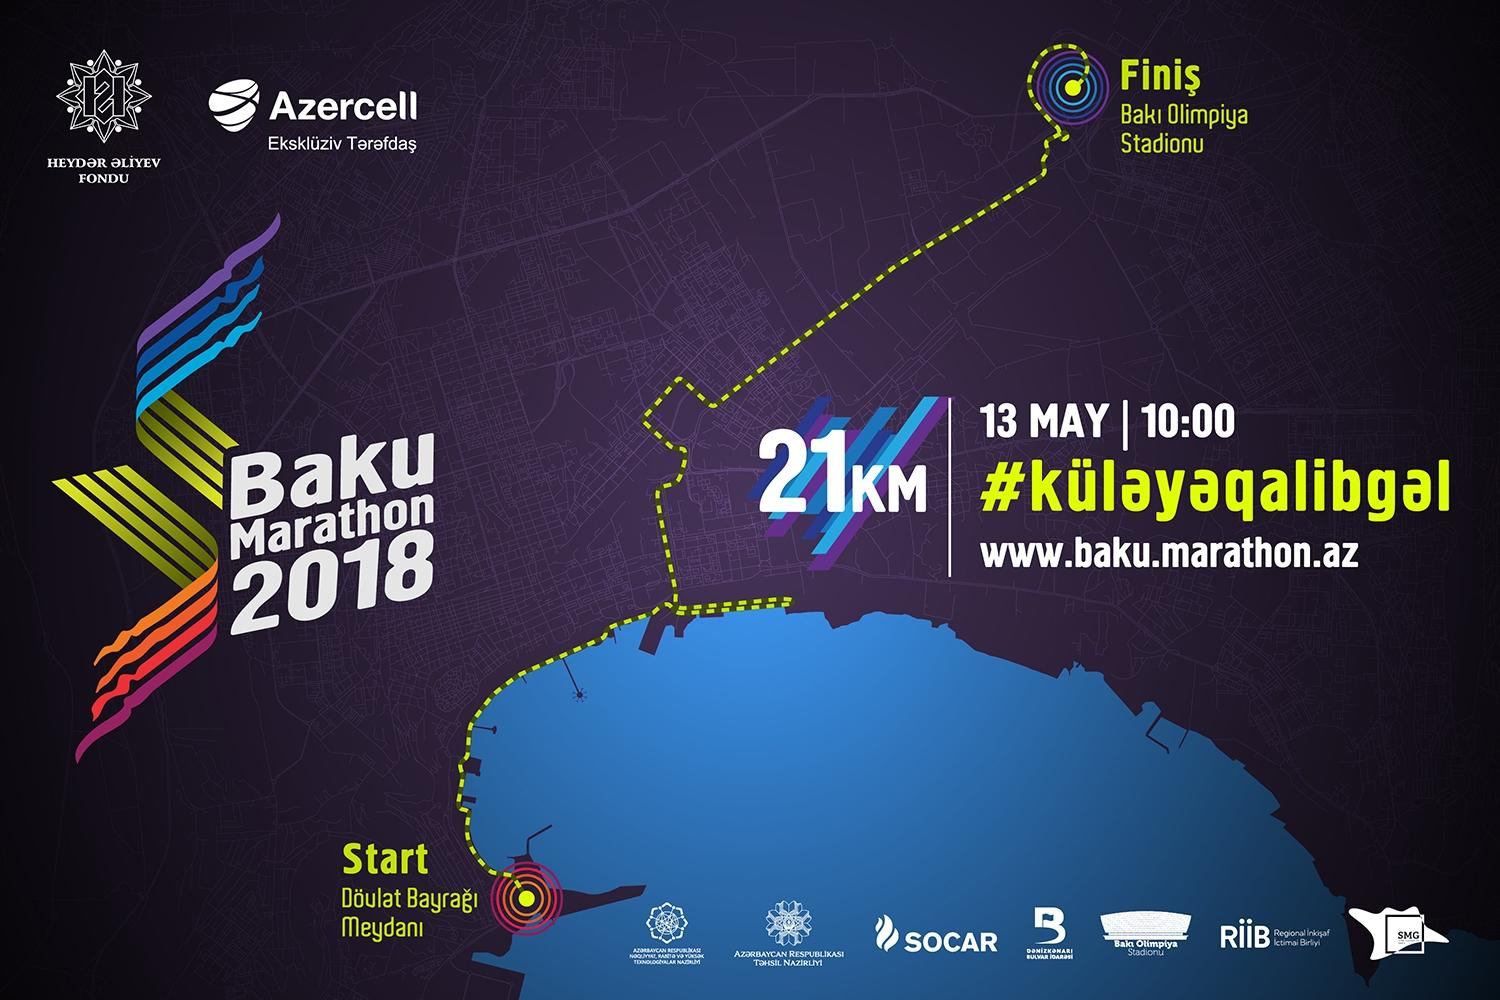 Heydar Aliyev Foundation to launch Baku Marathon 2018